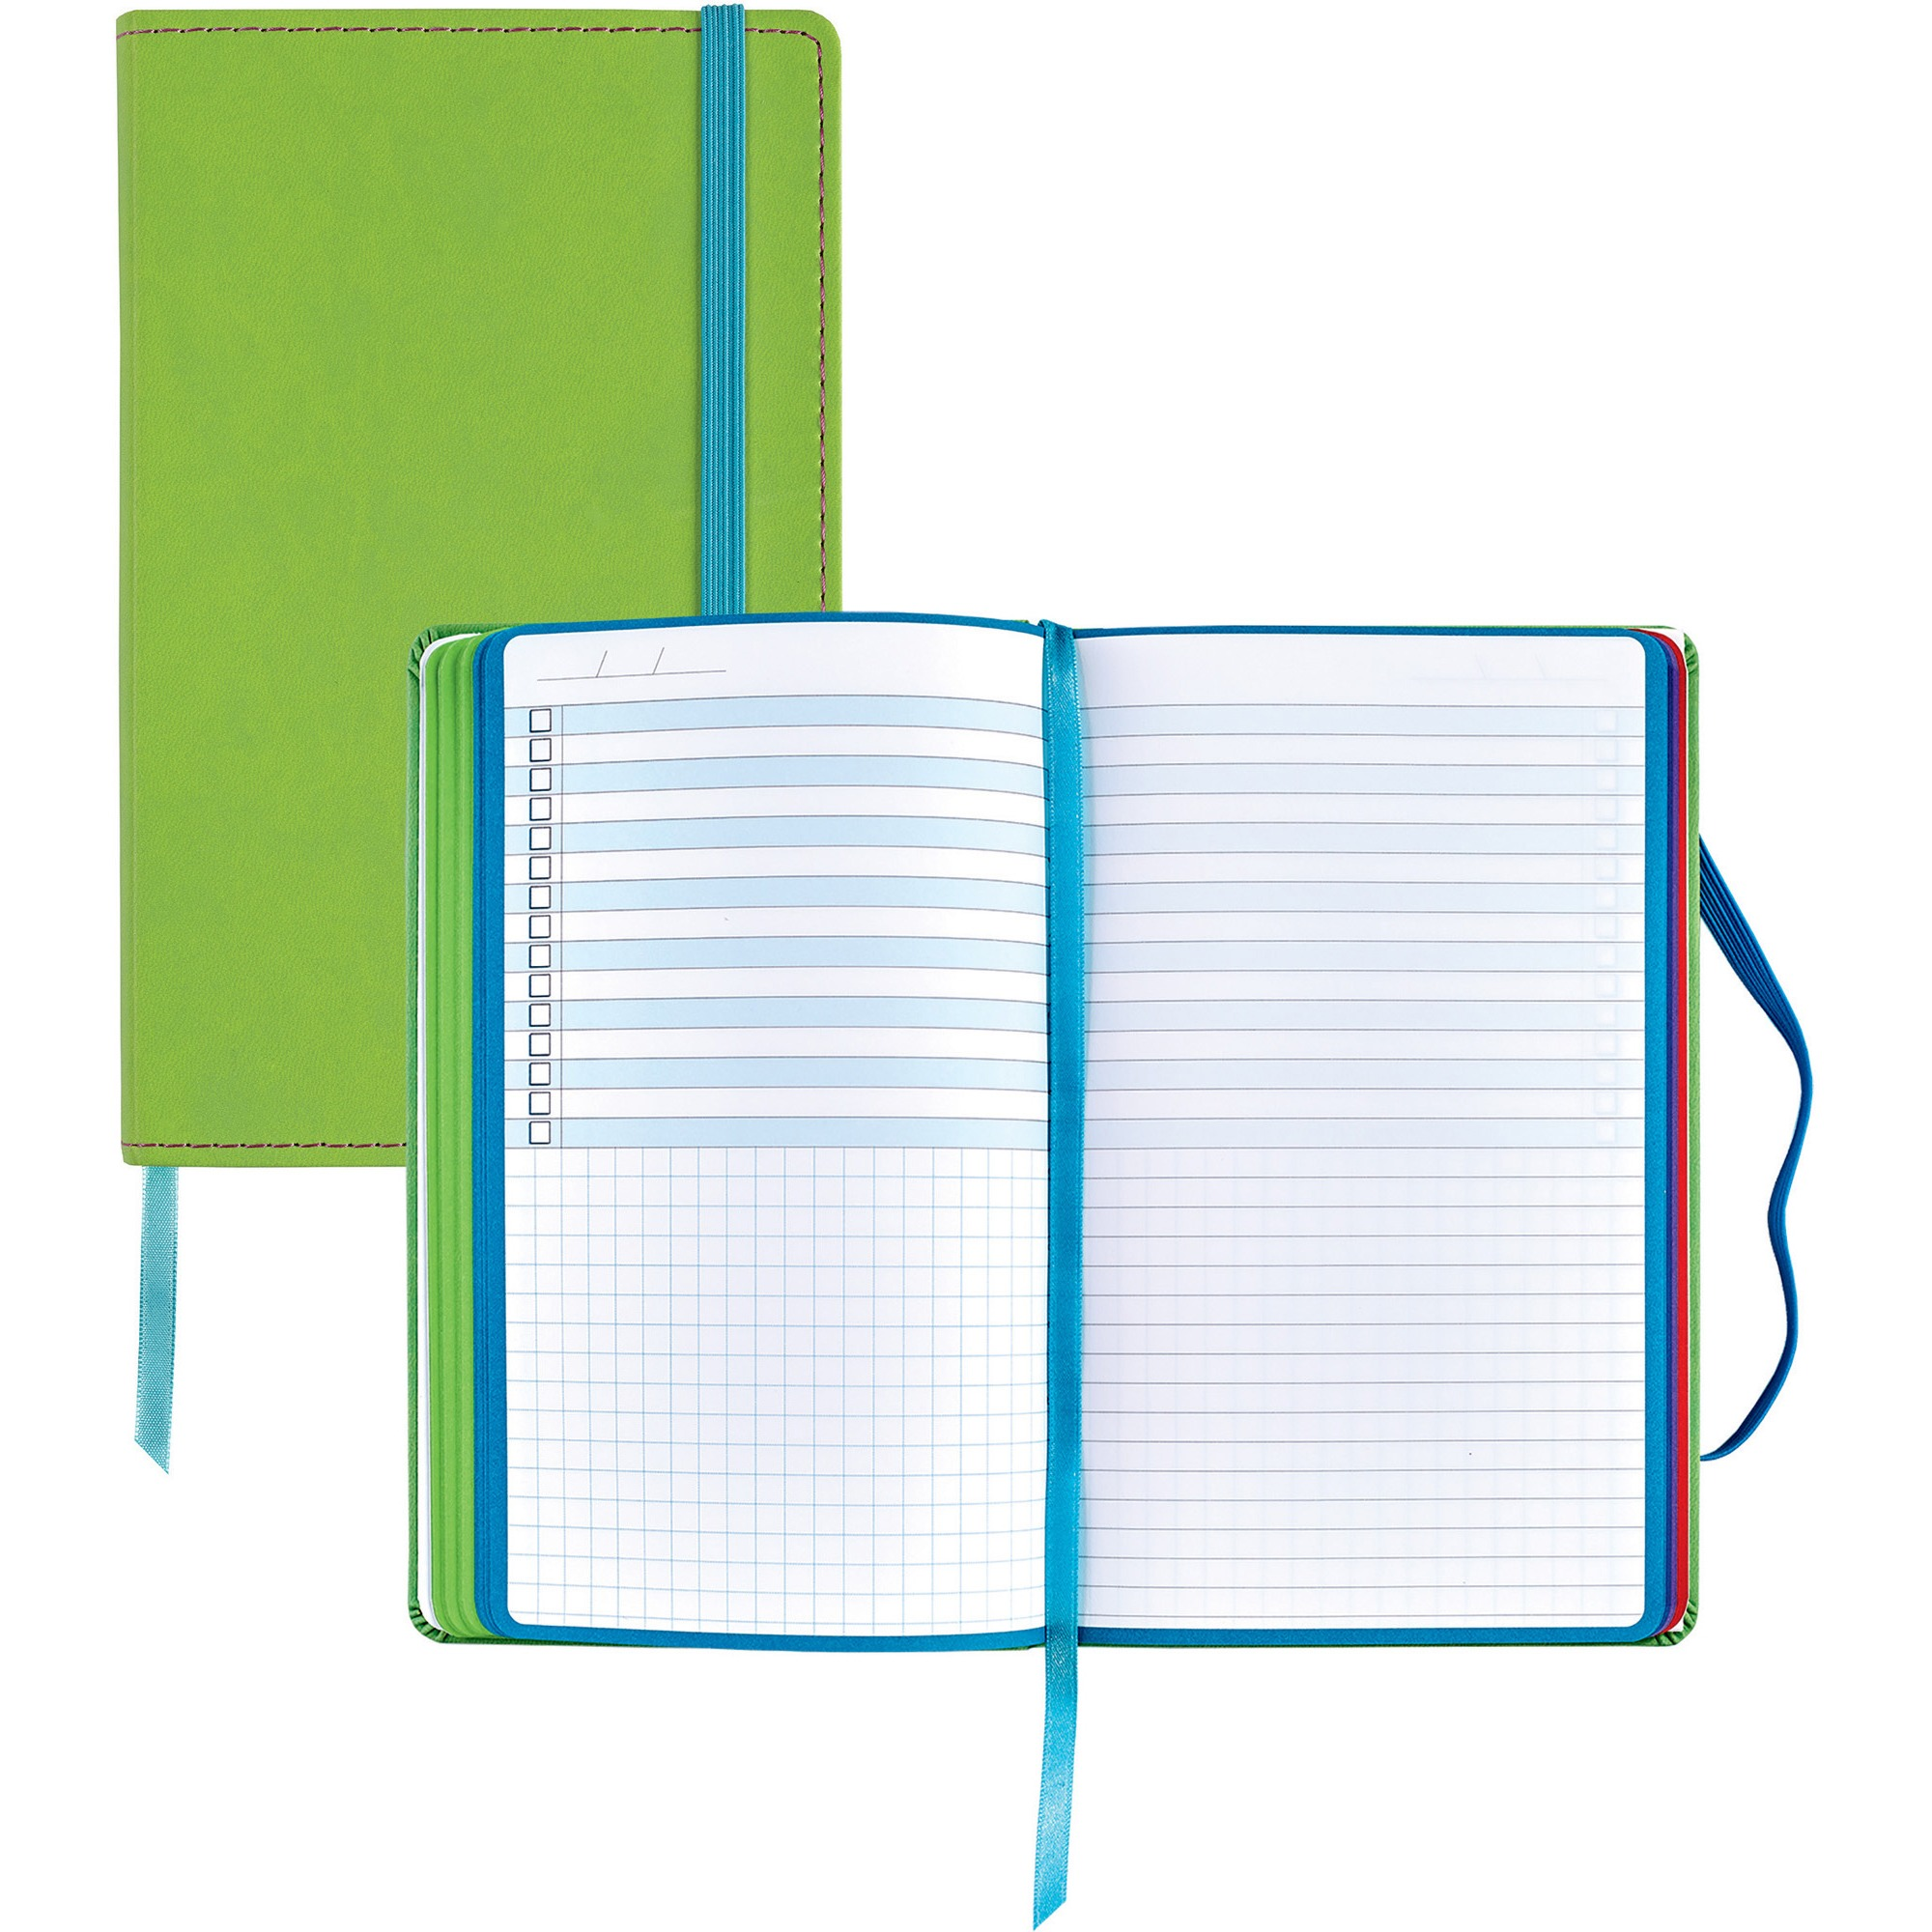 Astrobrights Leatherette Journal, 1 Each (Quantity)